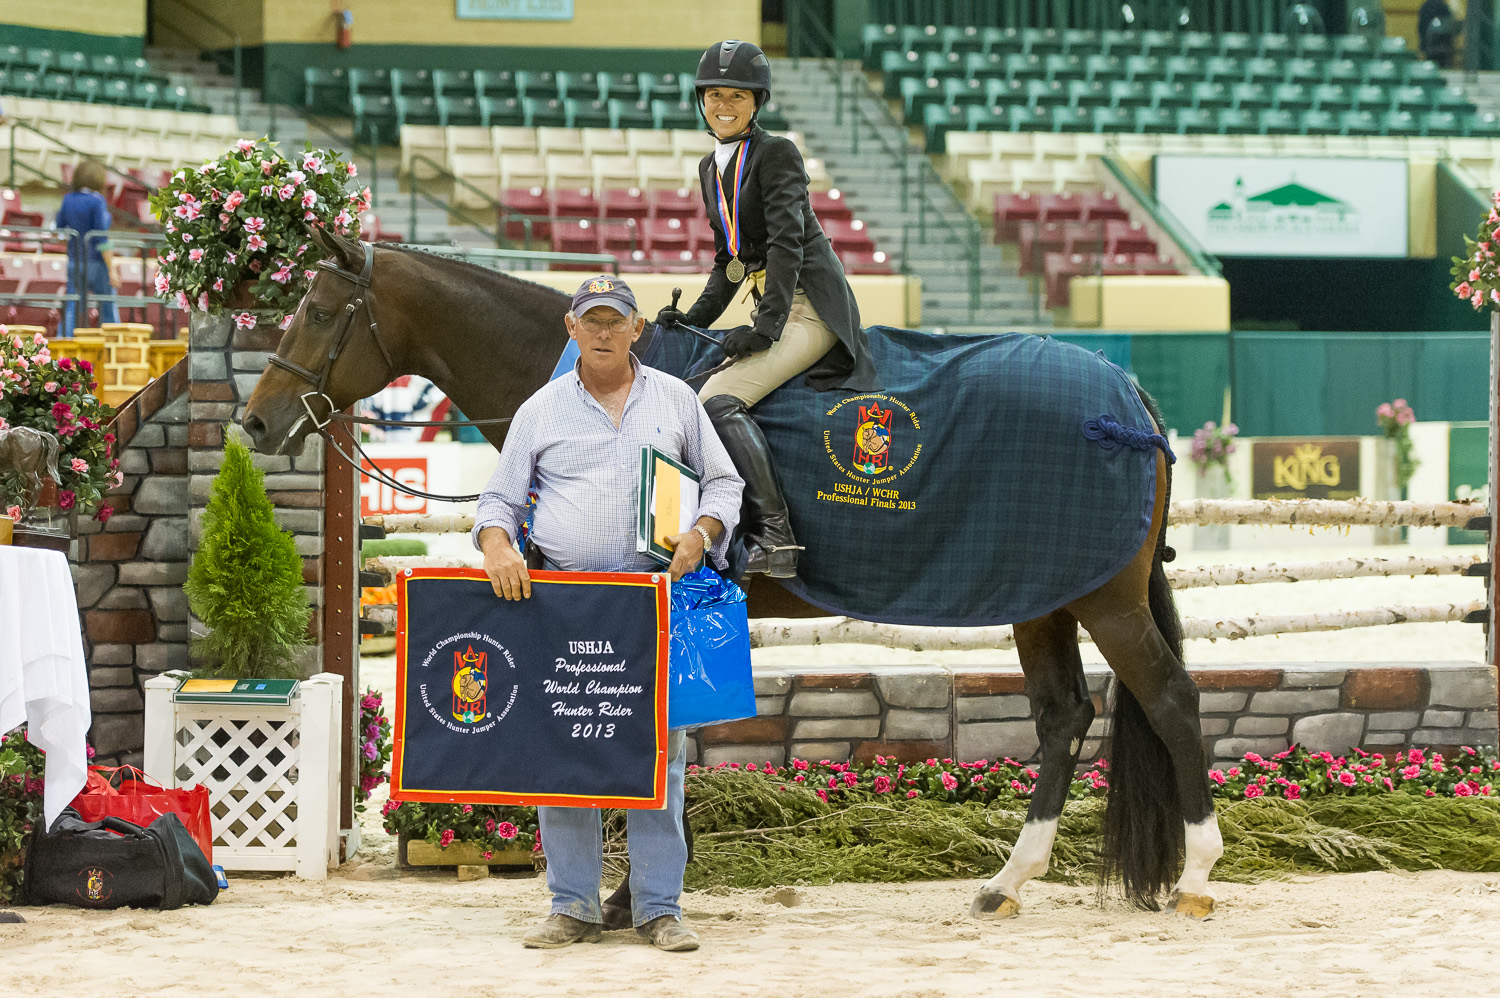 Liza Boyd and Jack Towell celebrate her WCHR Professional Finals victory.